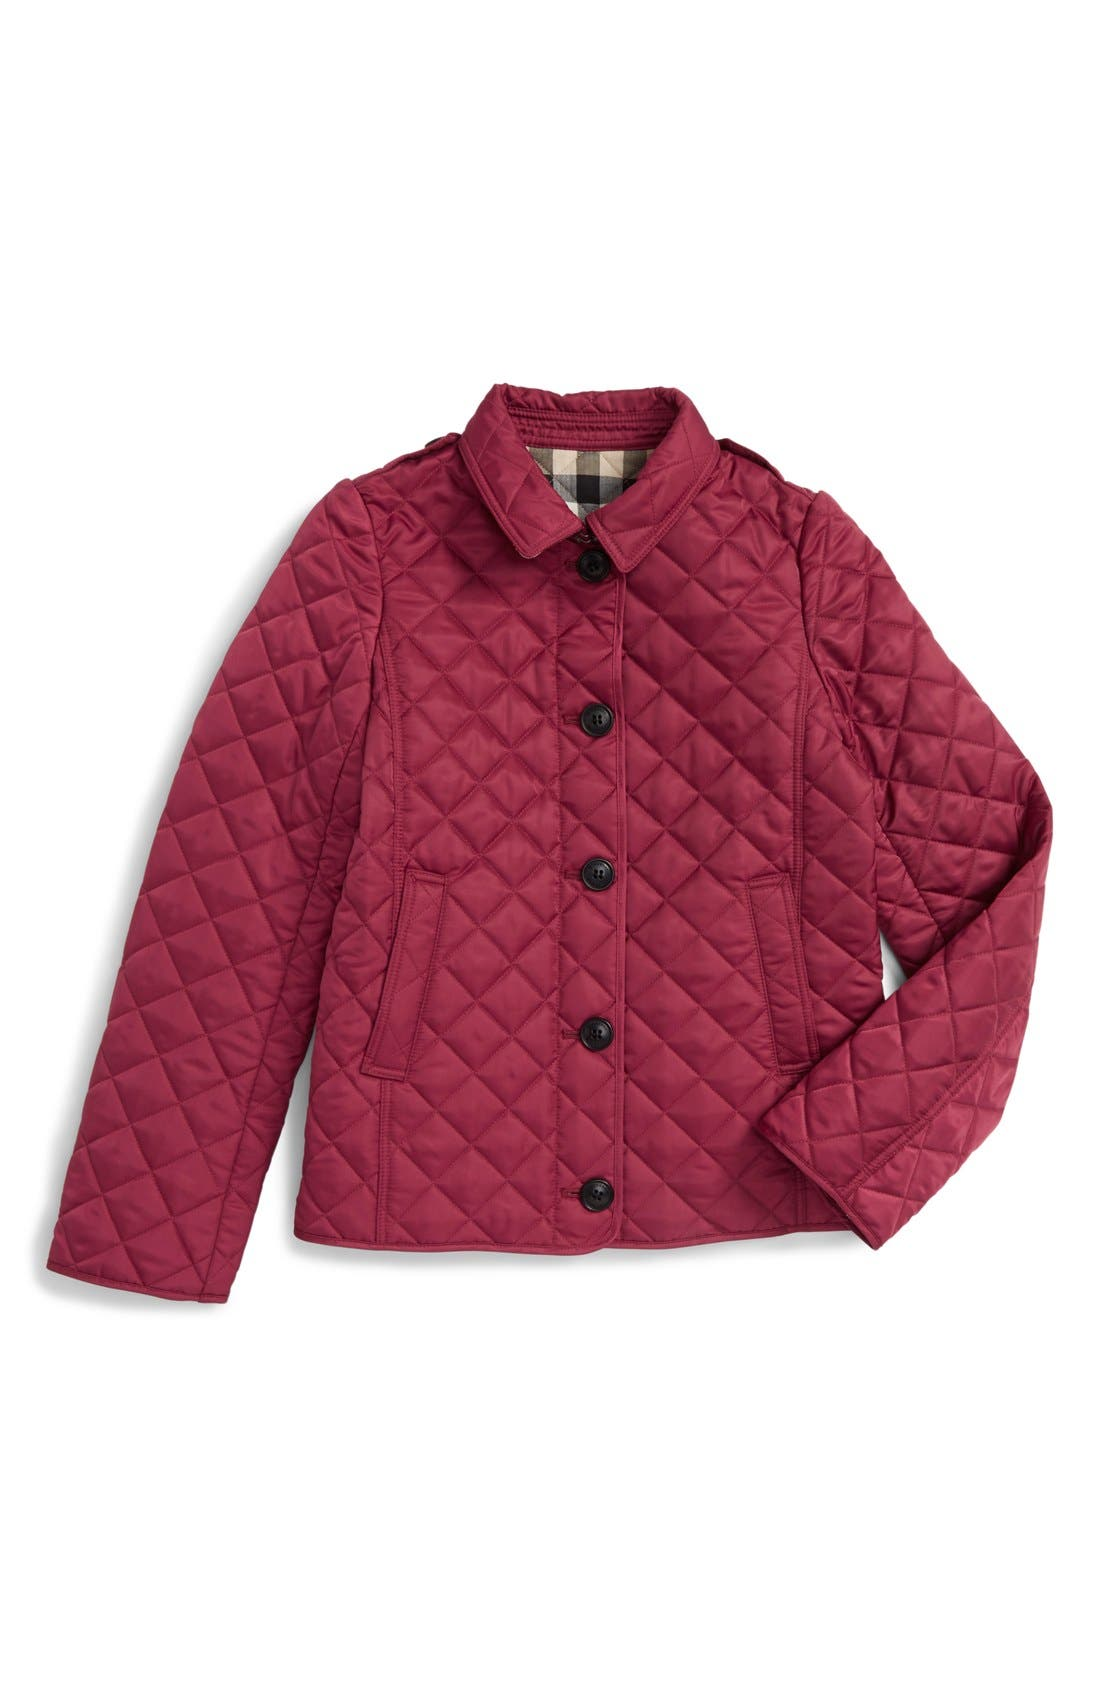 Main Image - Burberry 'Mini Ashurst' Quilted Jacket (Big Girls & Little Girls)